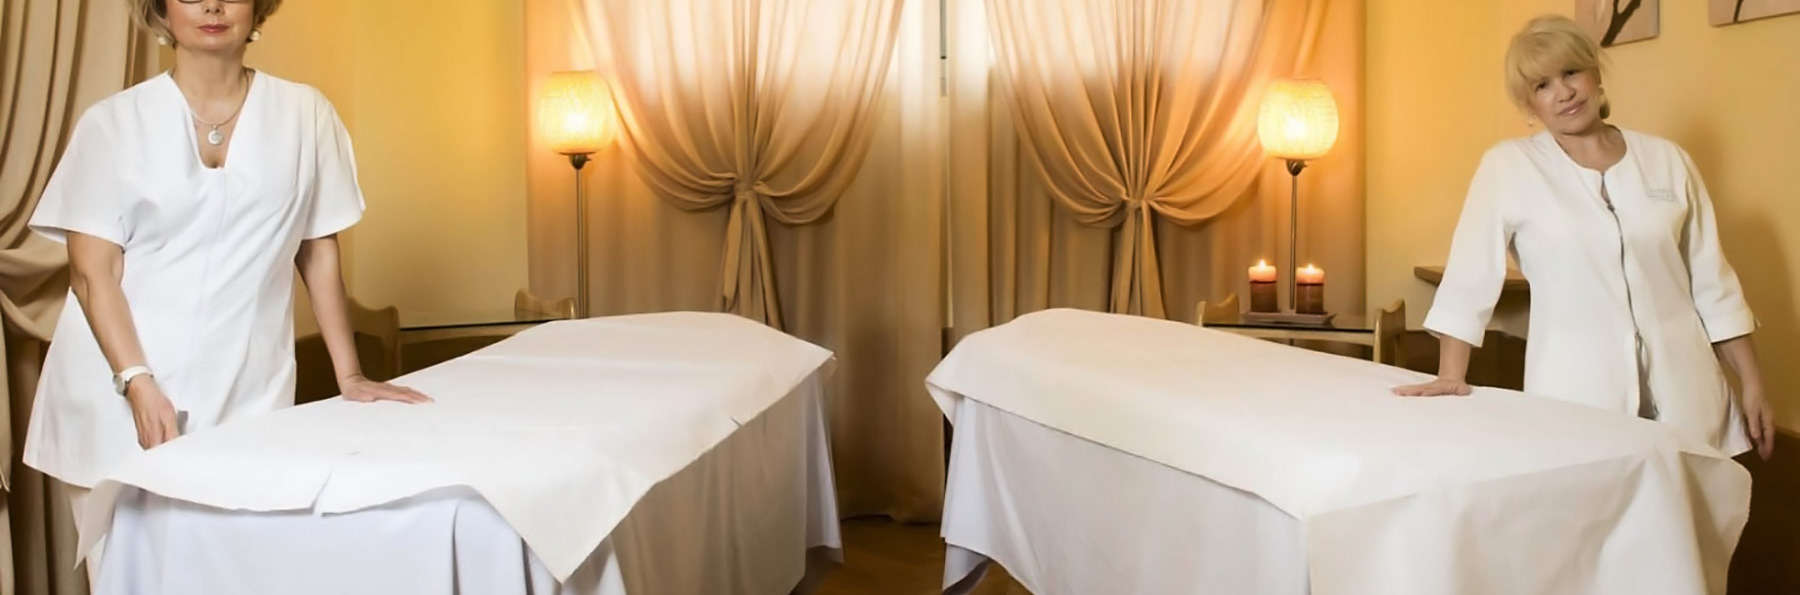 Hotel Abano Ritz Terme - EDIT_massage_altarisoluzione.jpg